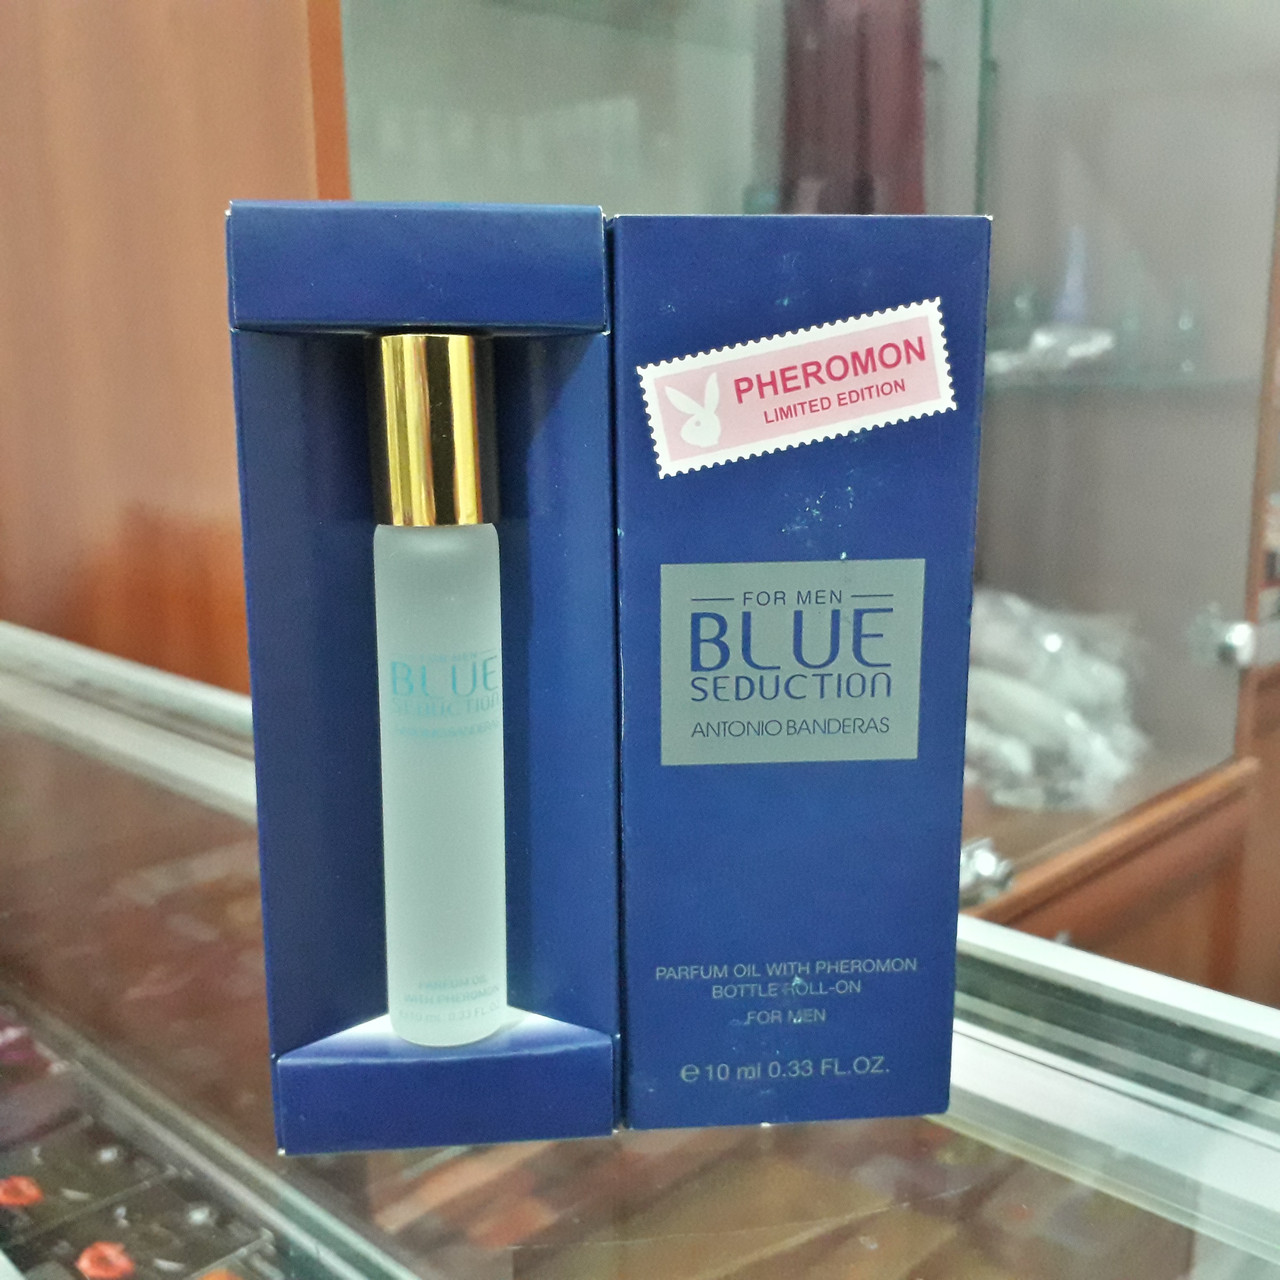 Духи с феромонами ANTONIO BANDERAS BLUE SEDUCTION FOR MEN, 10 ML